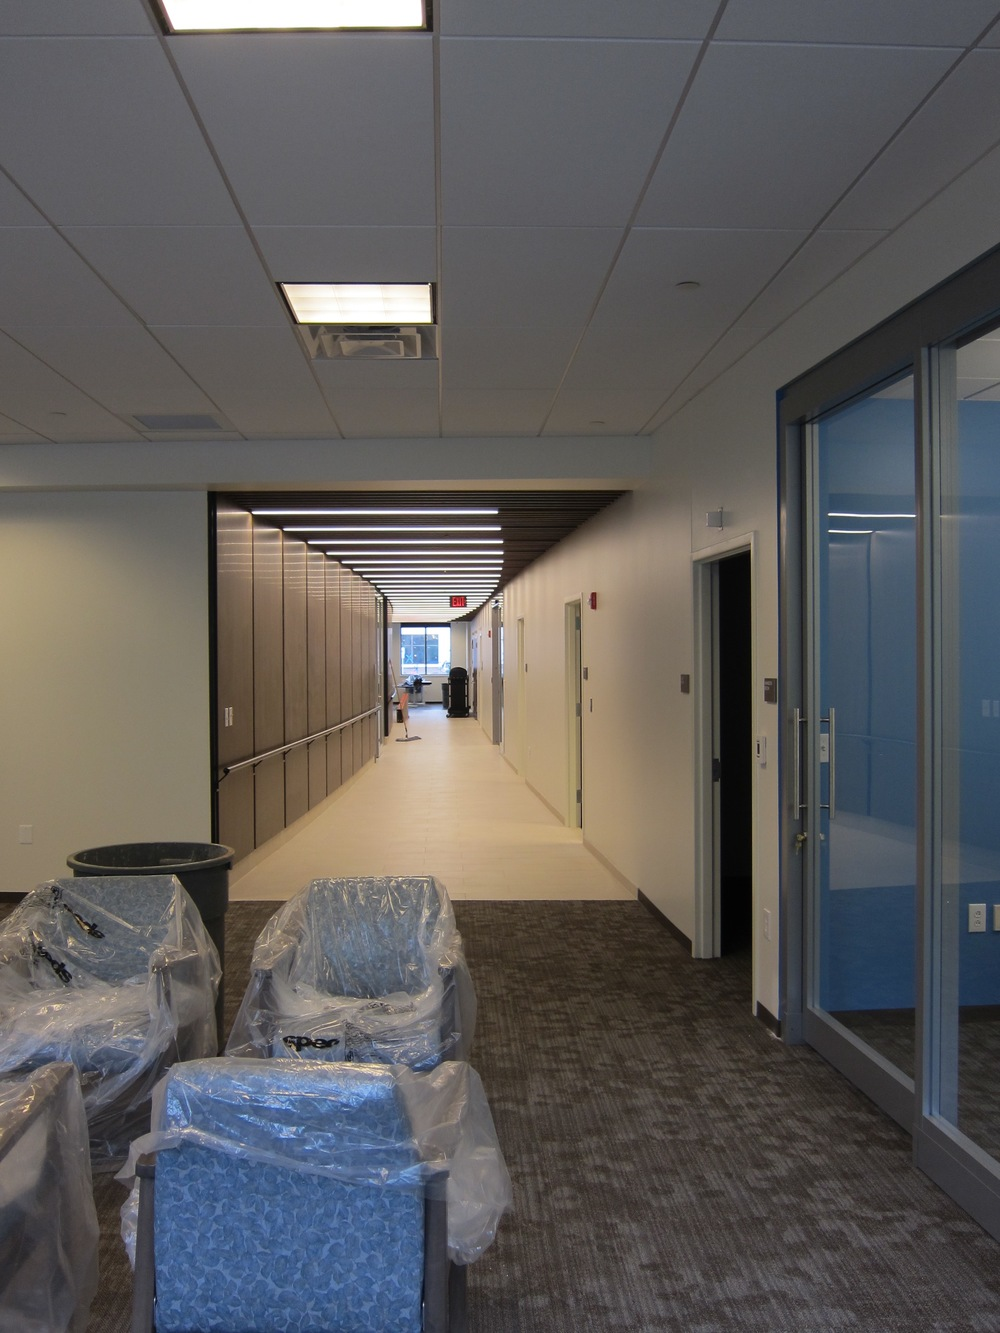 The main corridor connecting the large group activities area to the dining area.